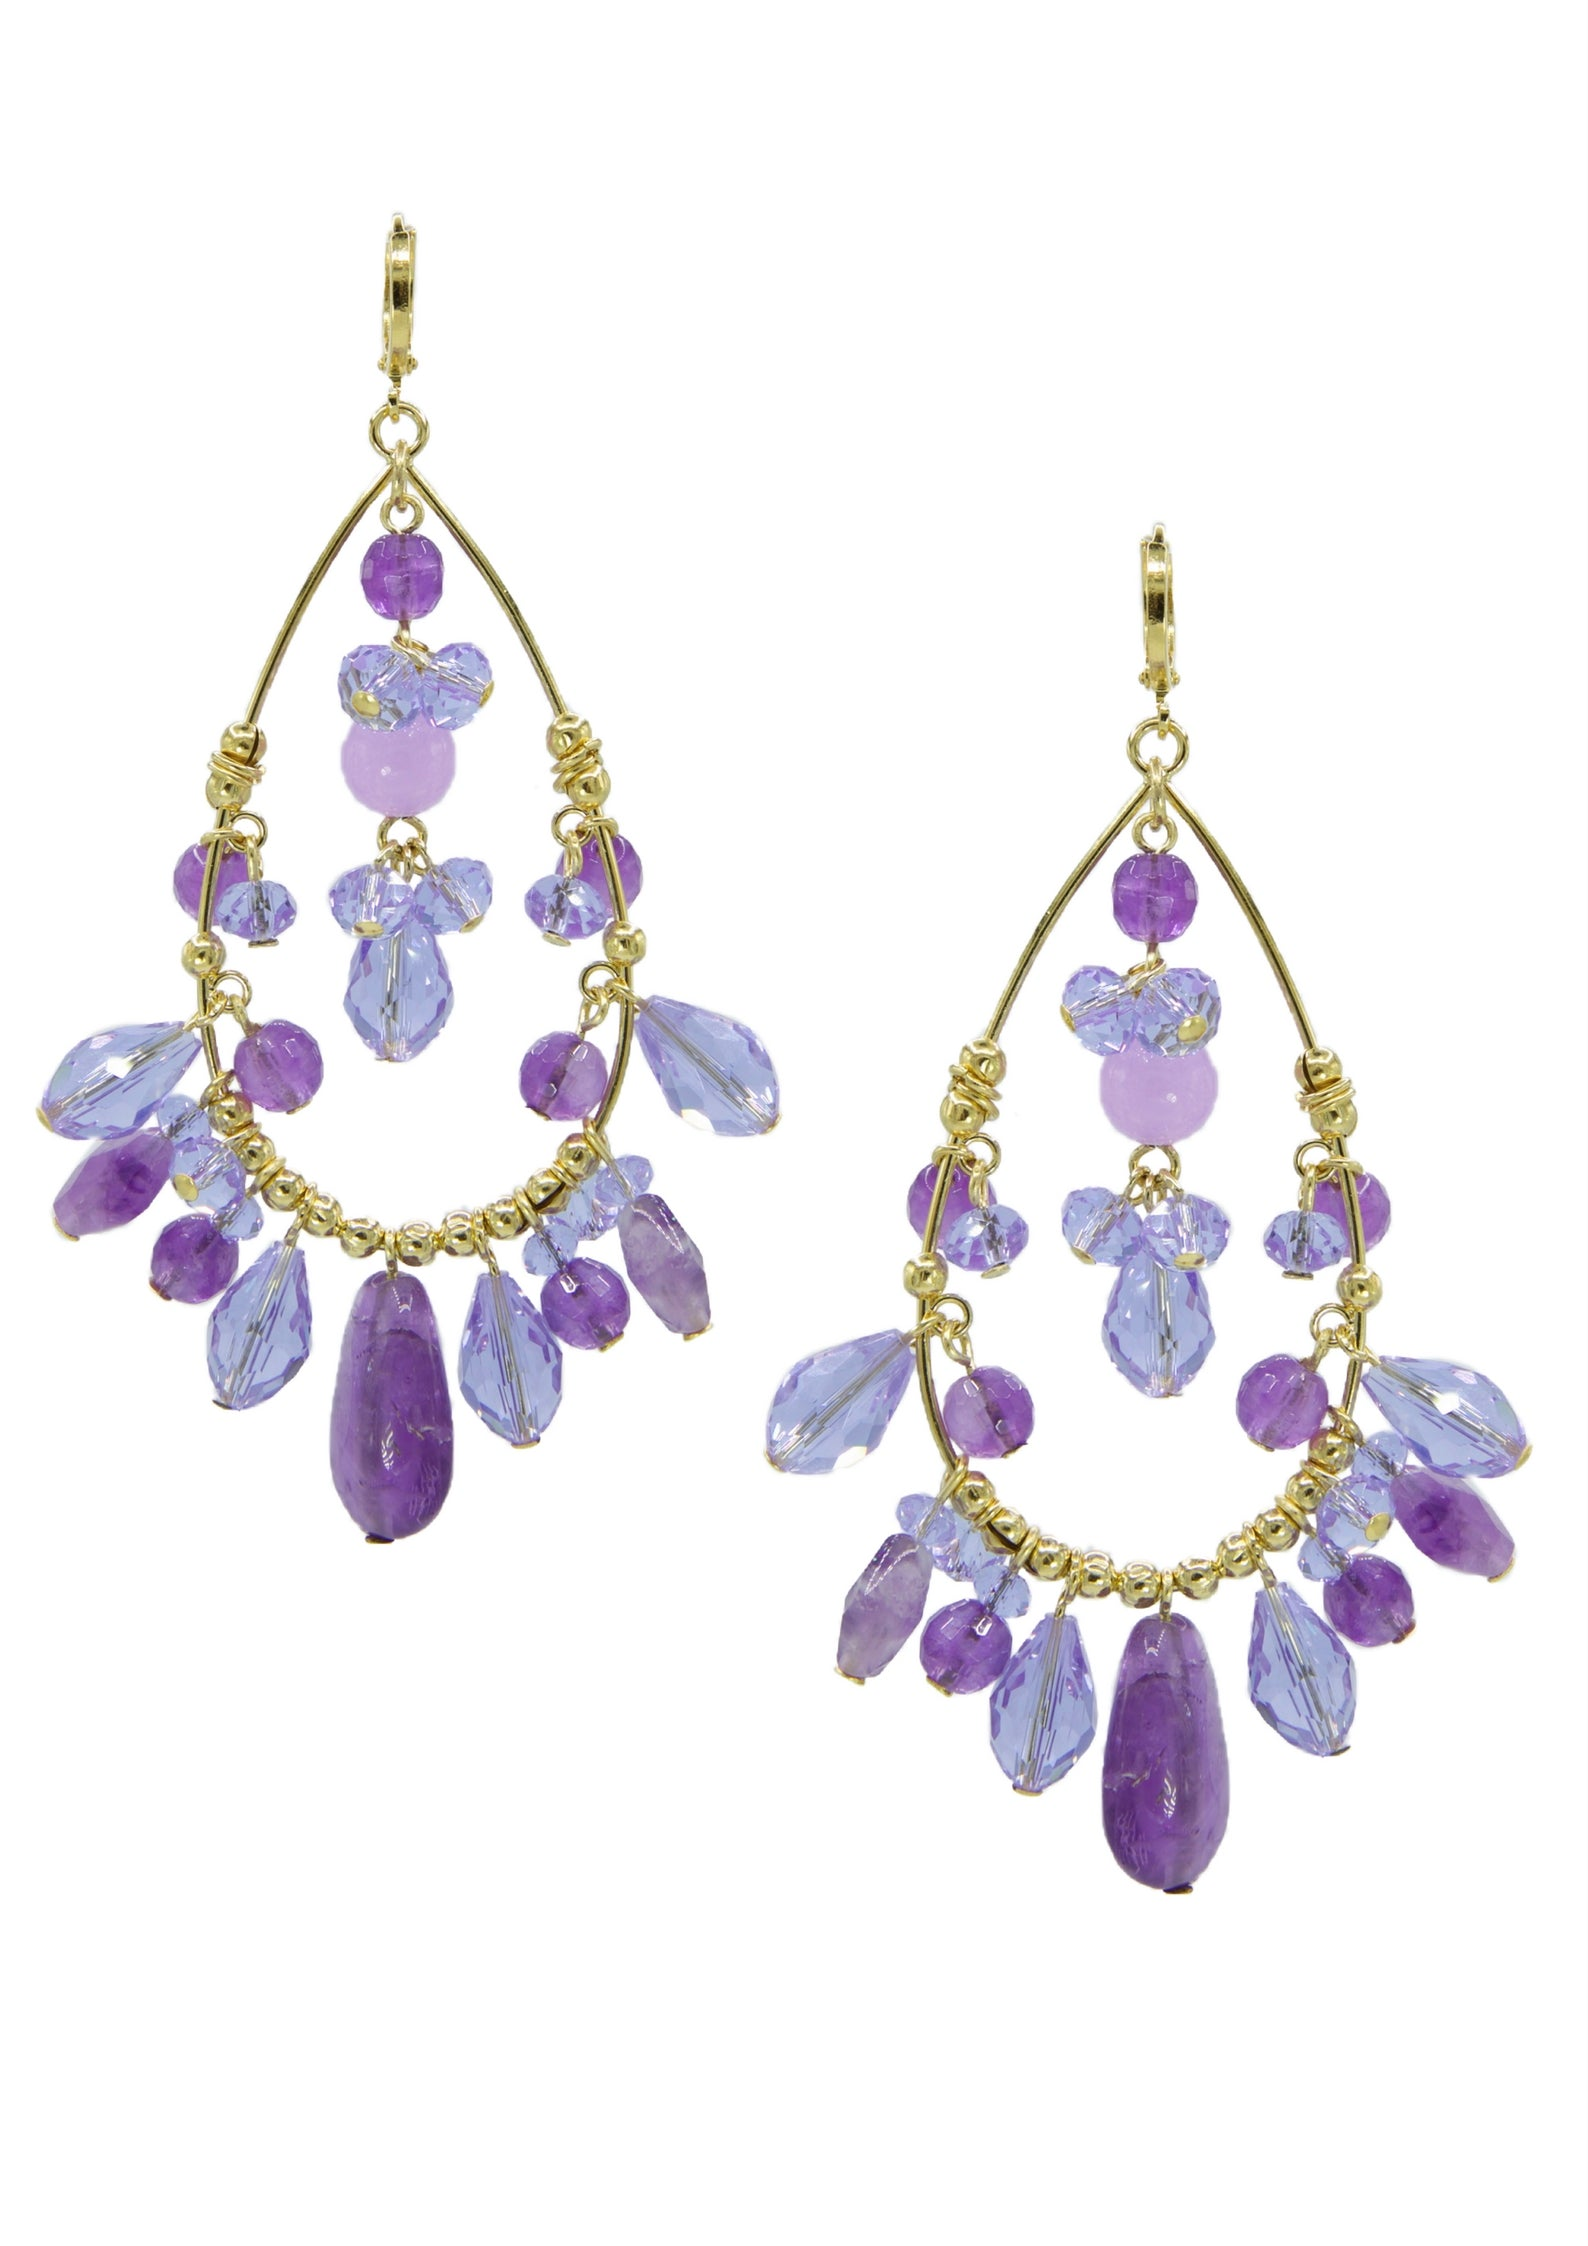 Lilac Lady Chandelier Earrings JARED JAMIN